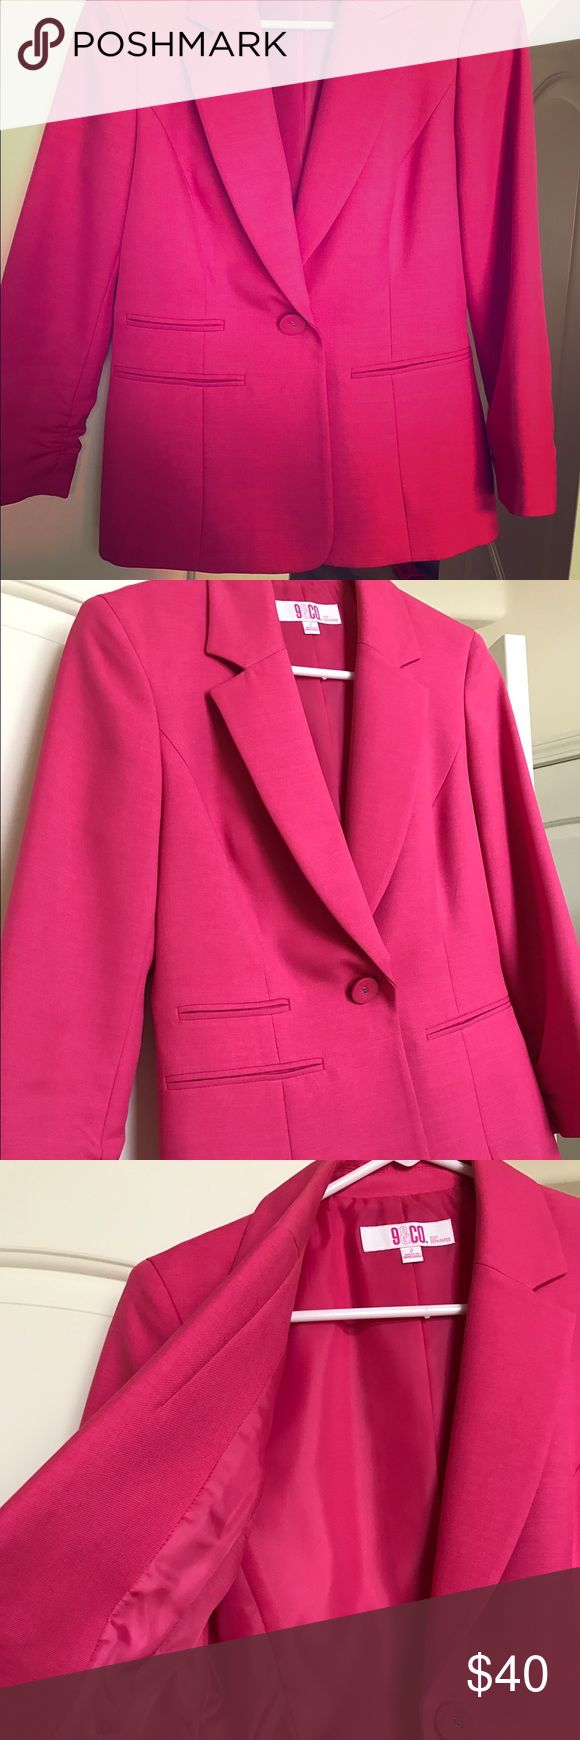 Hot pink blazer! Blazer sale!! Hot pink blazer perfect for the office! Jackets & Coats Blazers